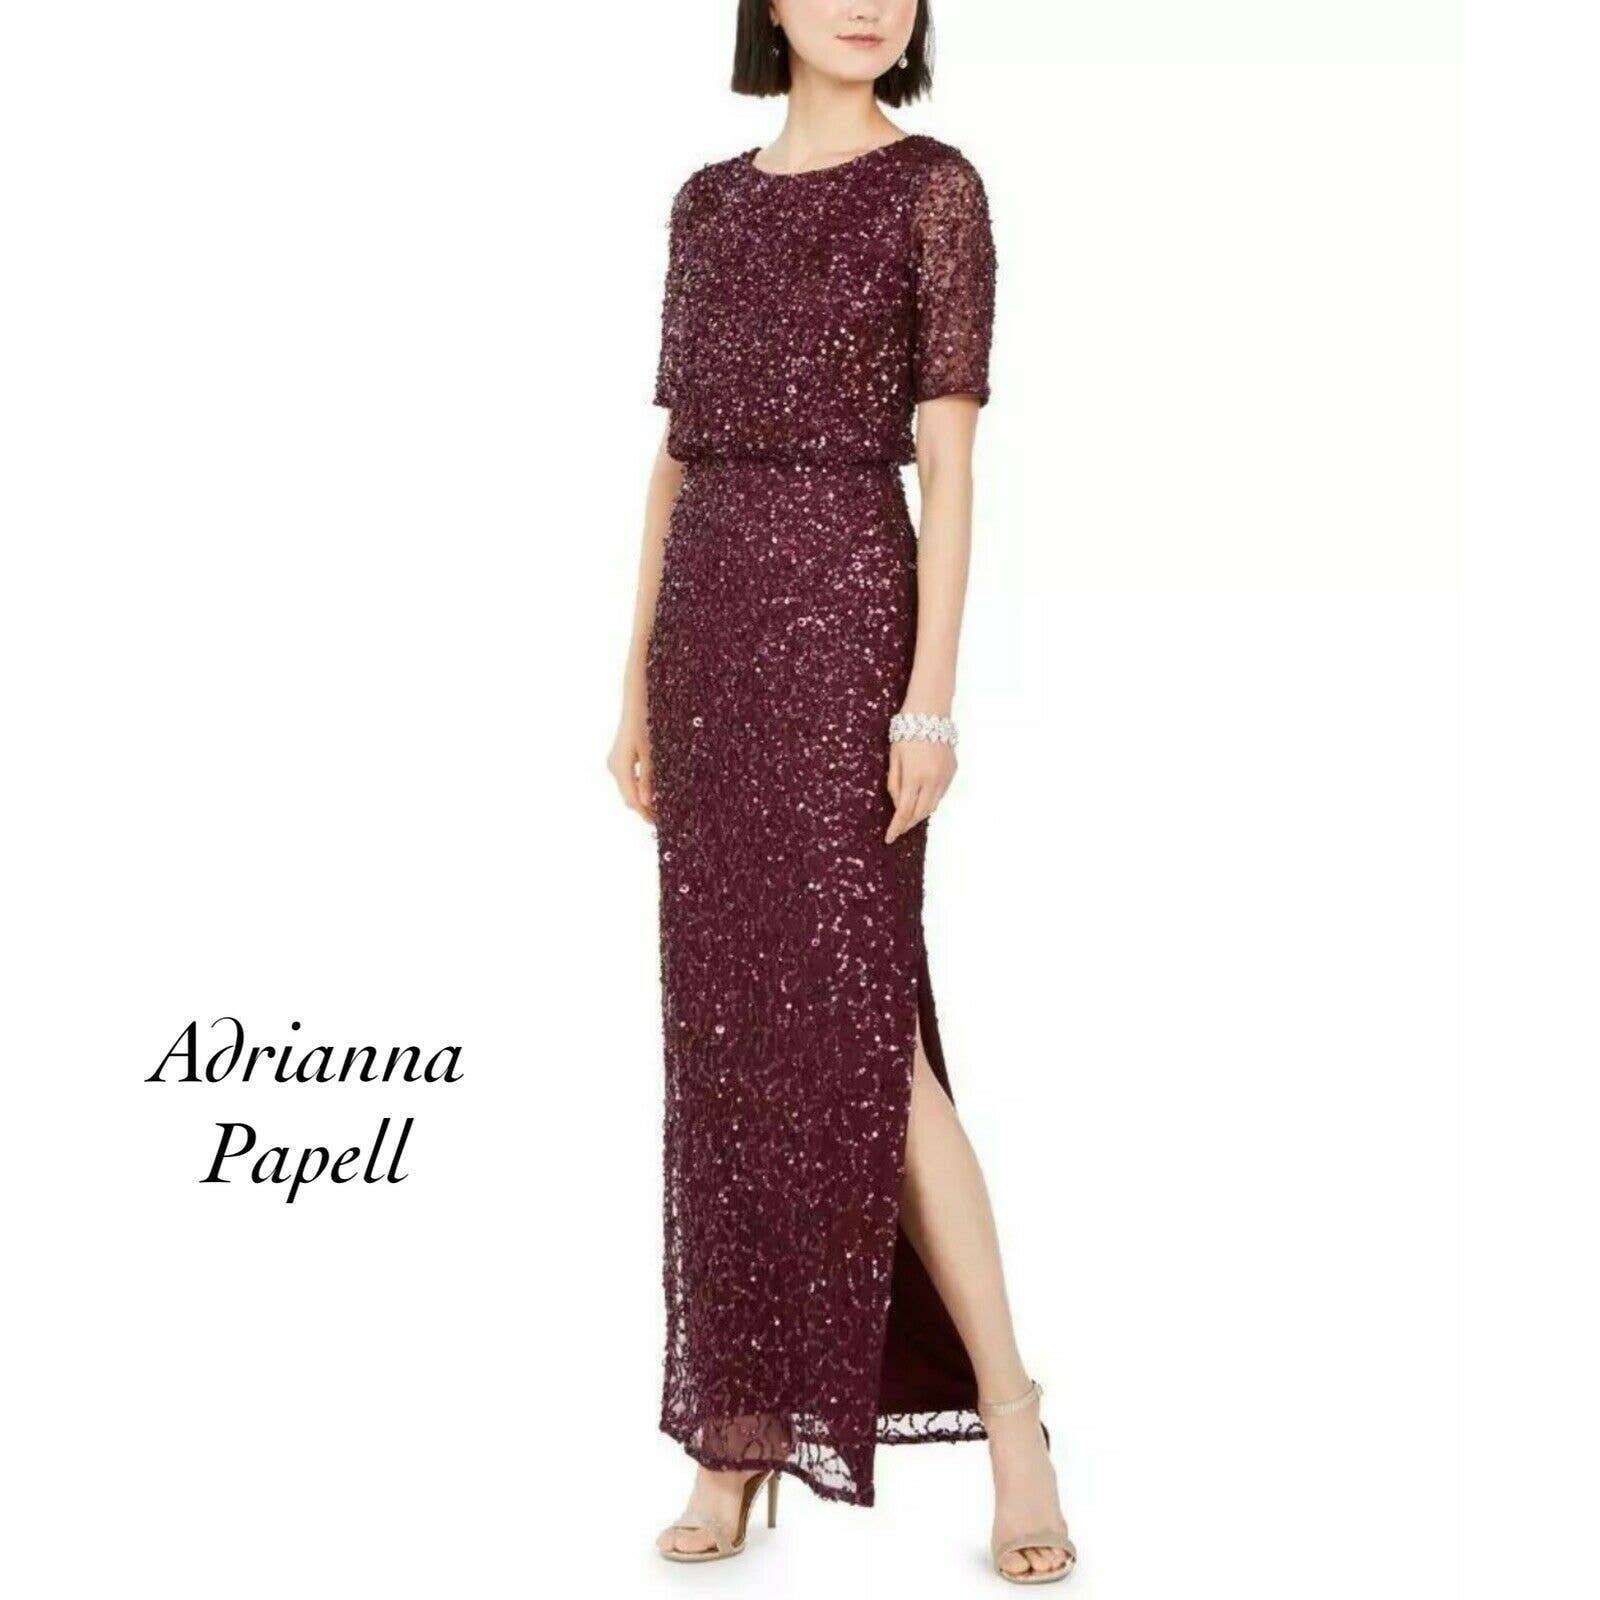 Adrianna Papell Sequin Dress NWT Size 8